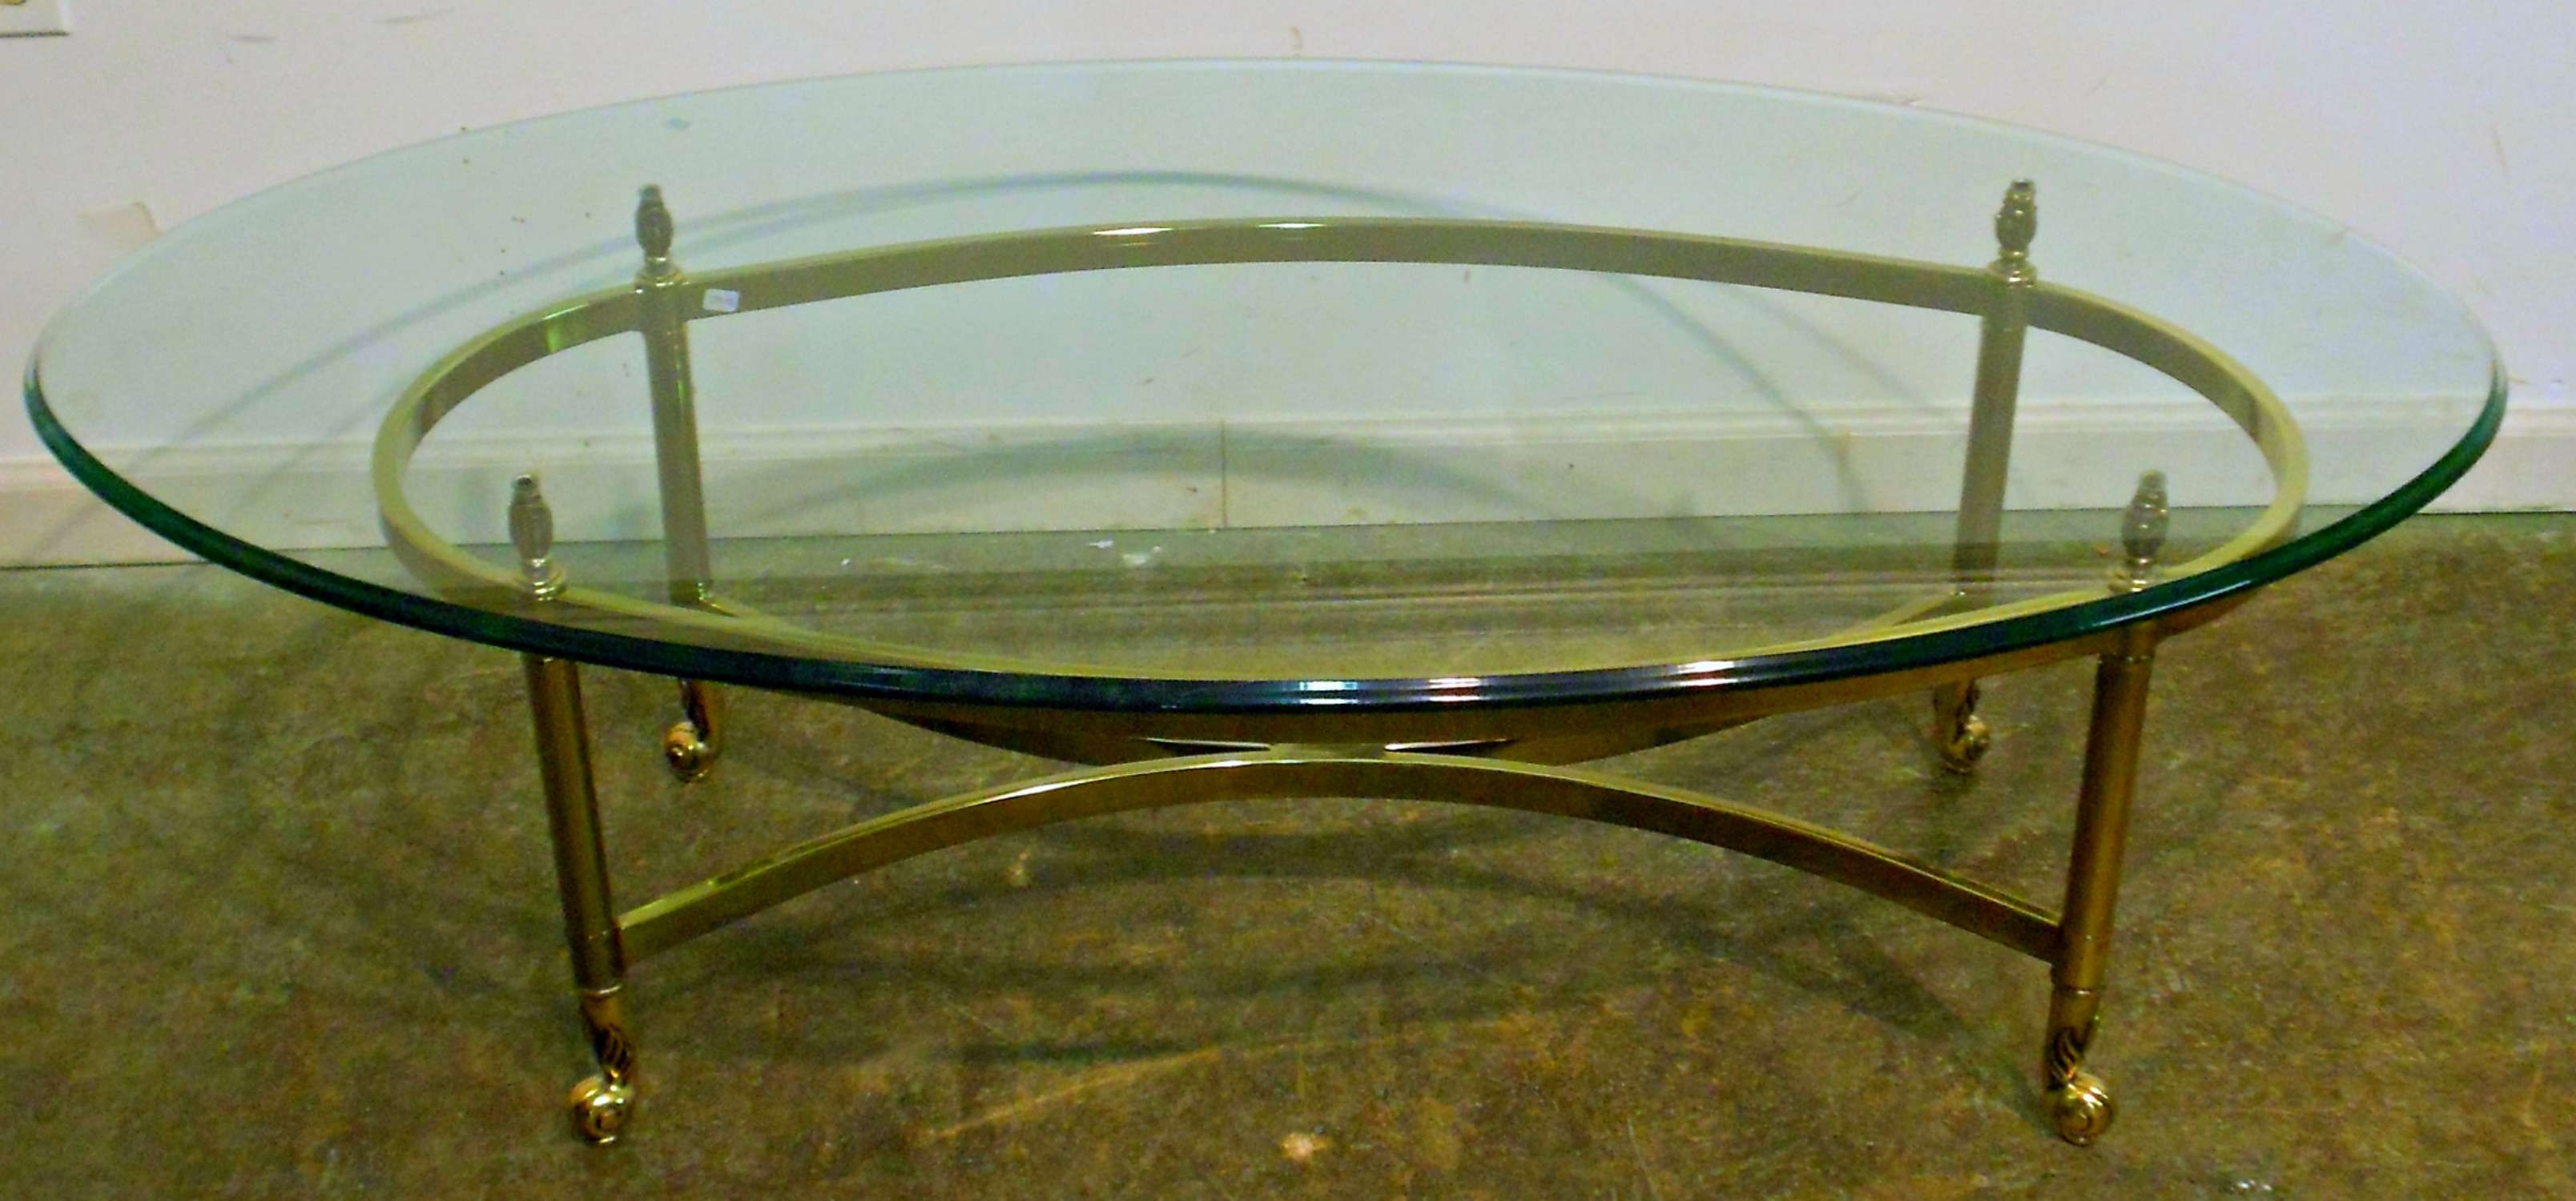 Oval Glass Top Coffee Table With Brass Frame And Wheels For Regarding Well Liked Oval Glass And Wood Coffee Tables (Gallery 13 of 20)